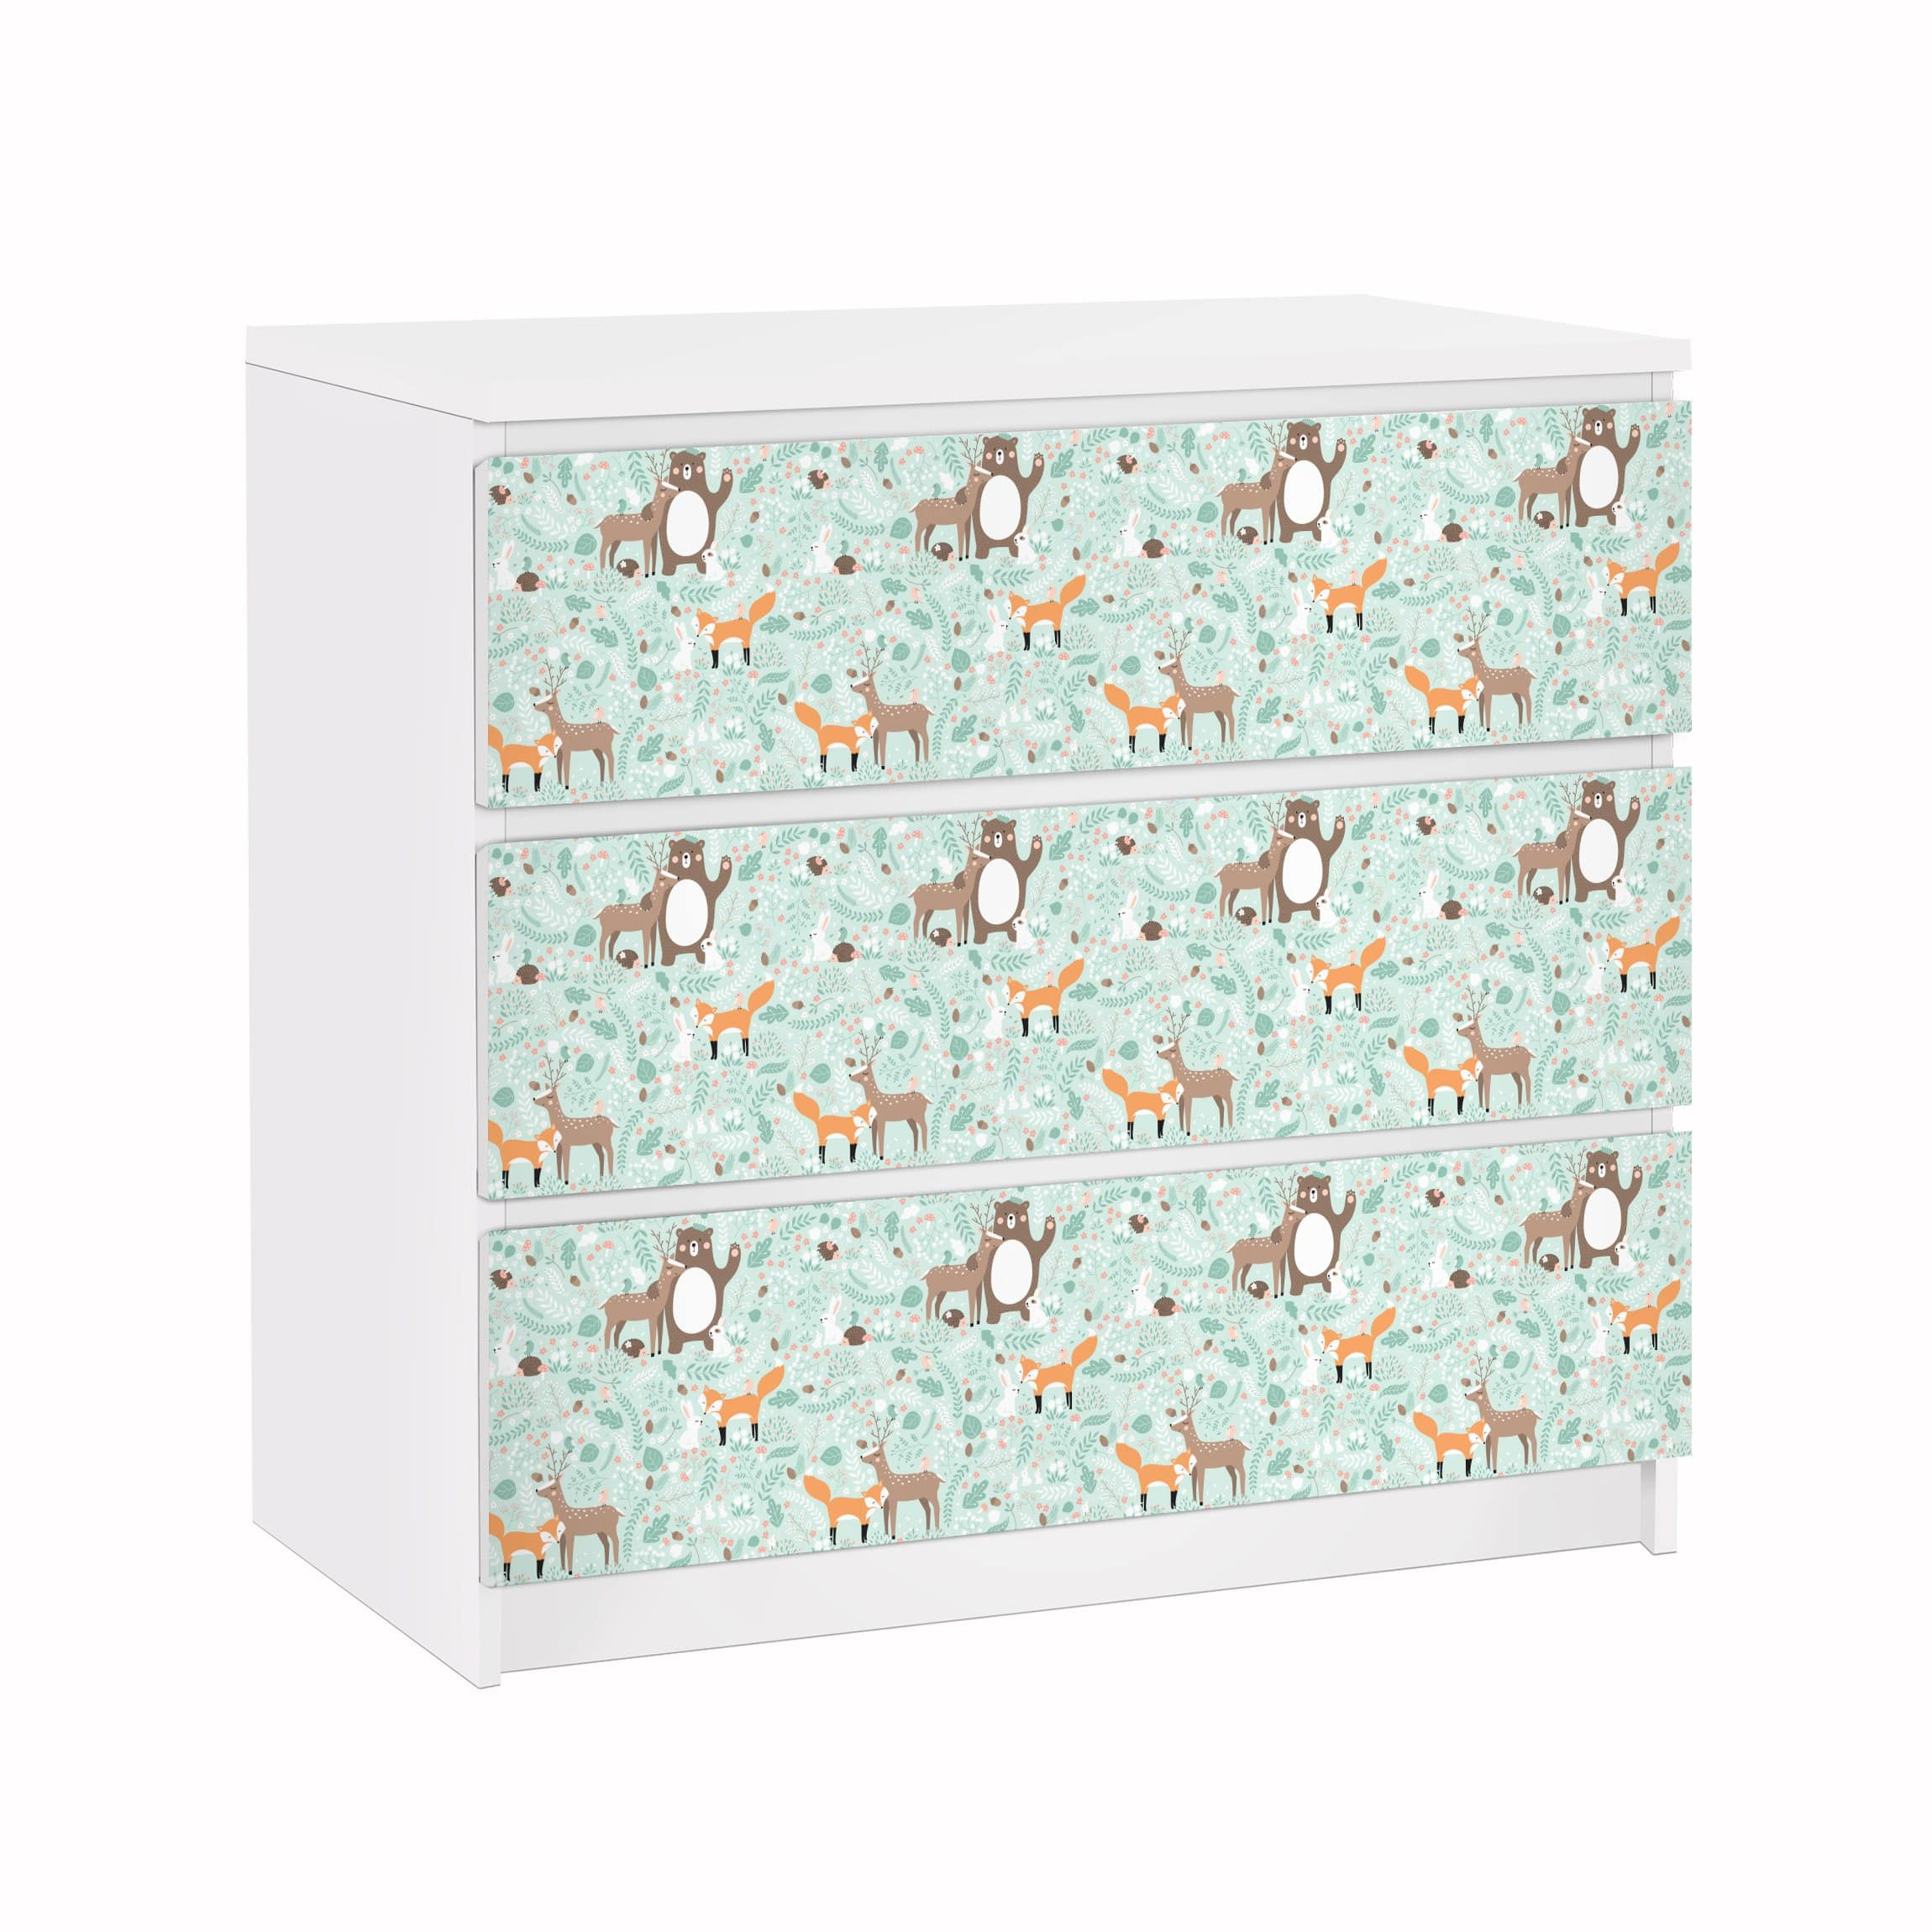 Furniture Decal for IKEA Malm Dresser 3xDrawers - Kids Pattern Forest  Friends With Forest Animals